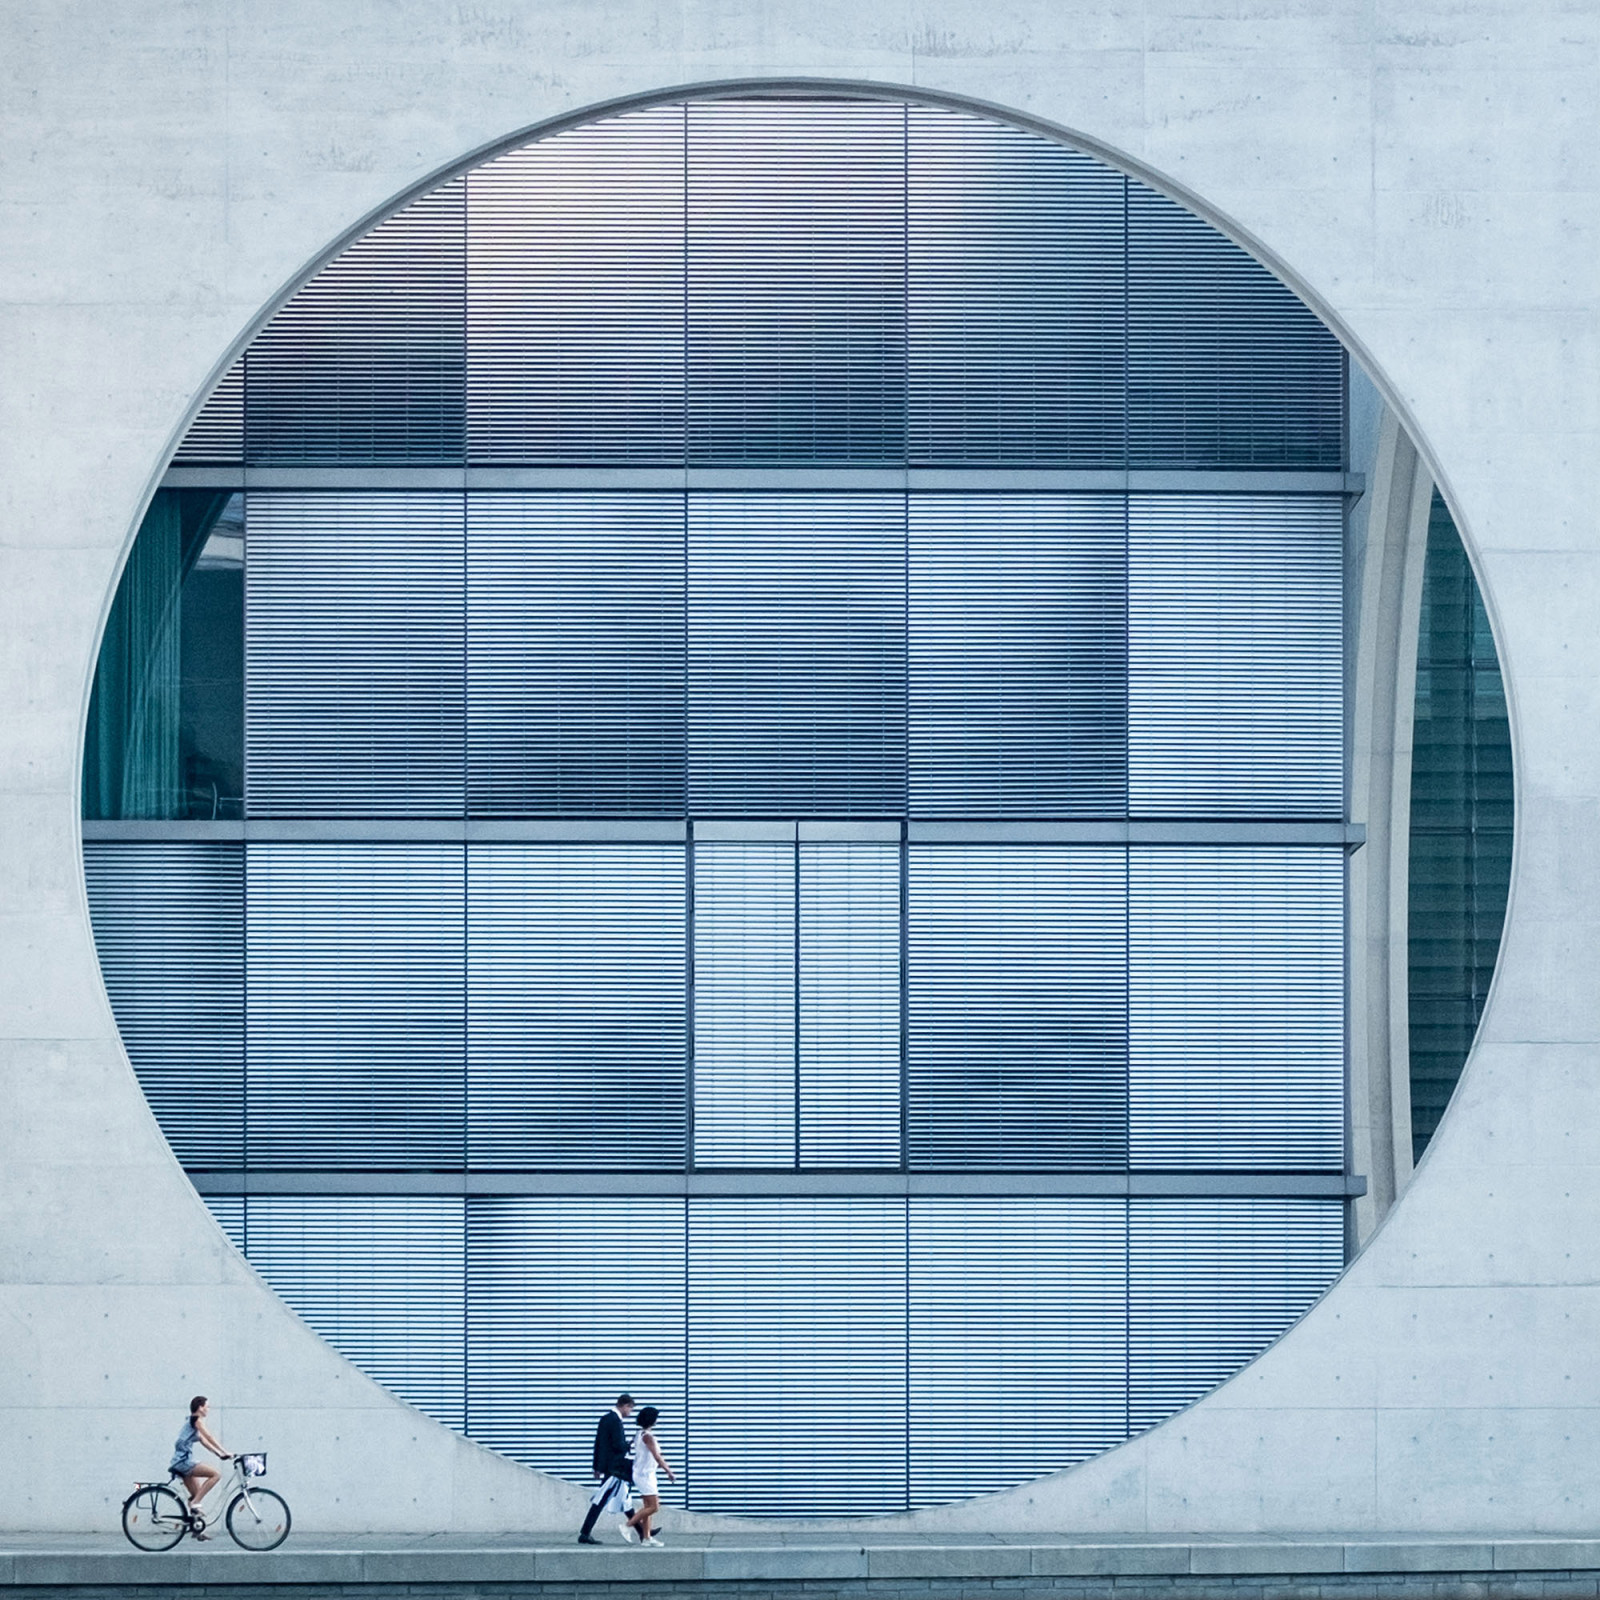 © Tim Cornbill, UK, Winner, Open Competition, Architecture, 2017 Sony World Photography Awards